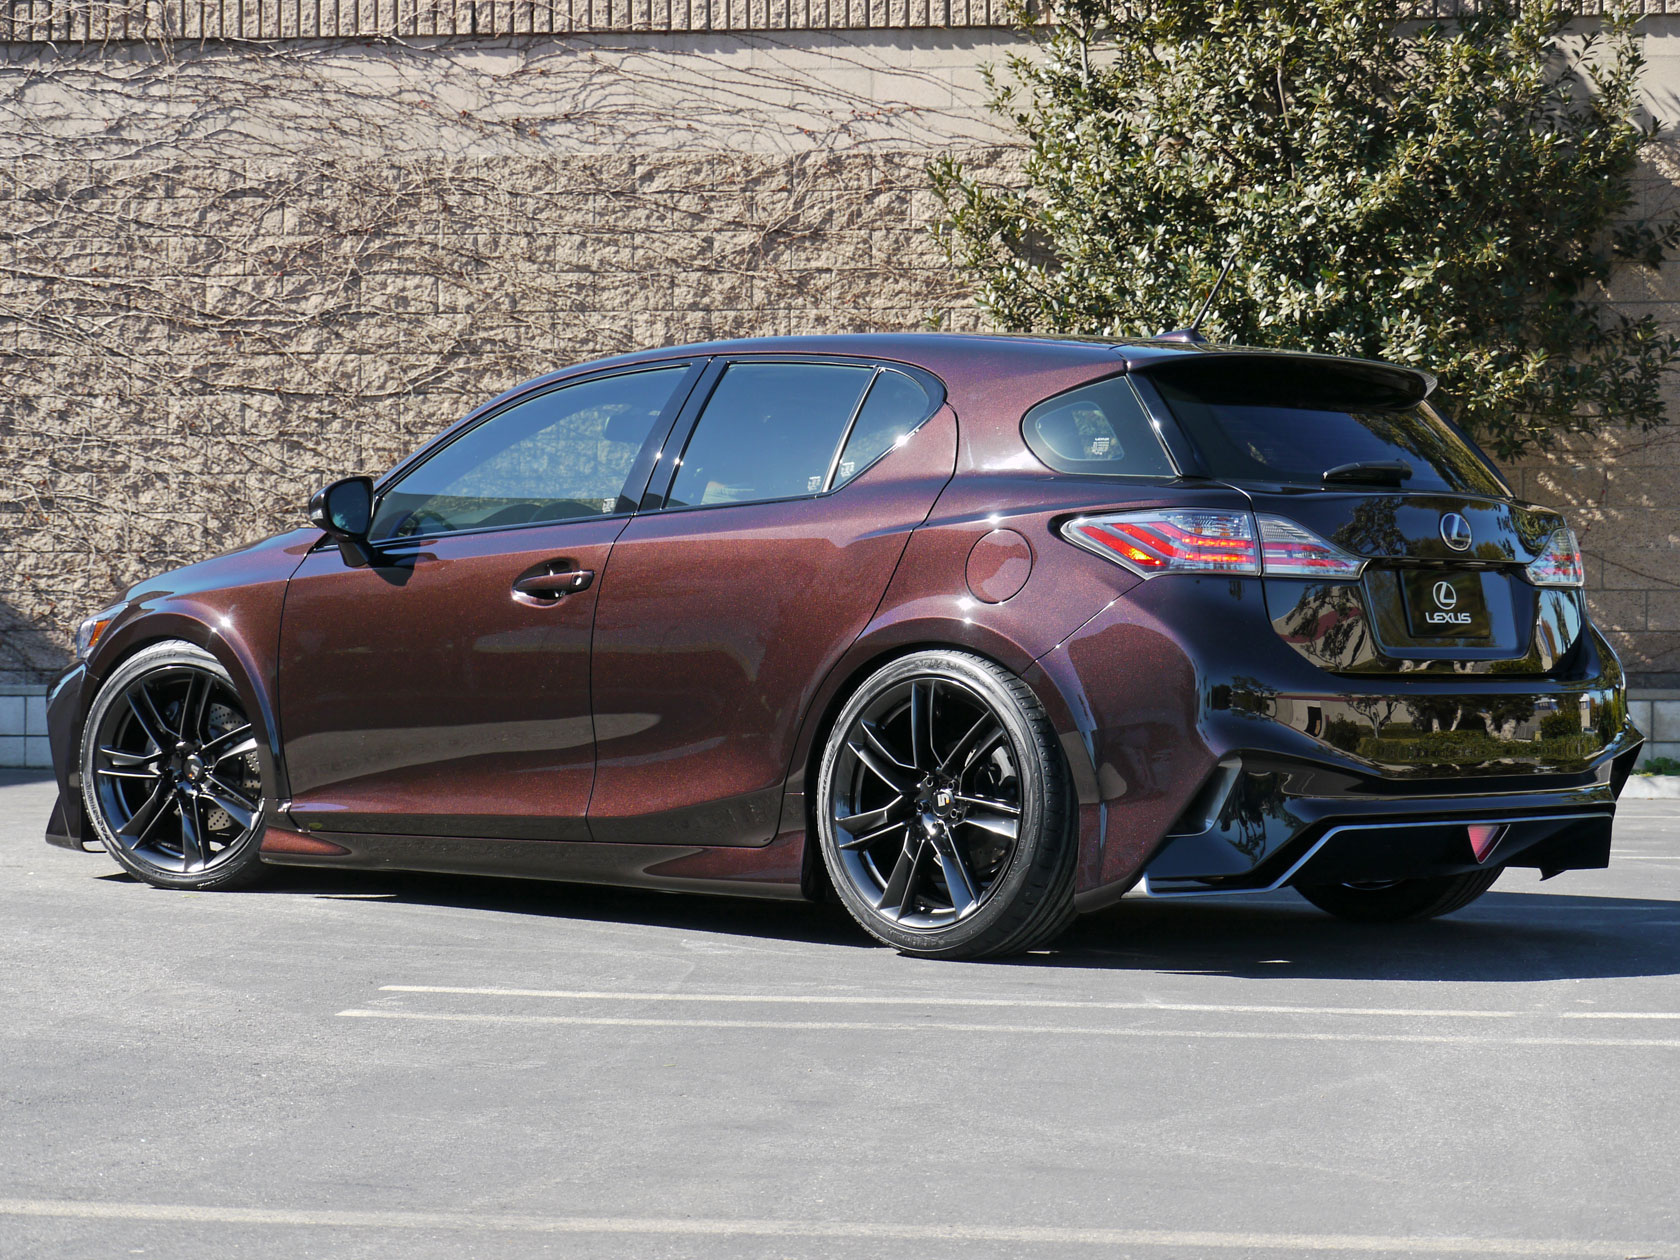 Lexus Ct200H F Sport >> Lexus Tuning - Widebody CT 200h Project CT by Five Axis